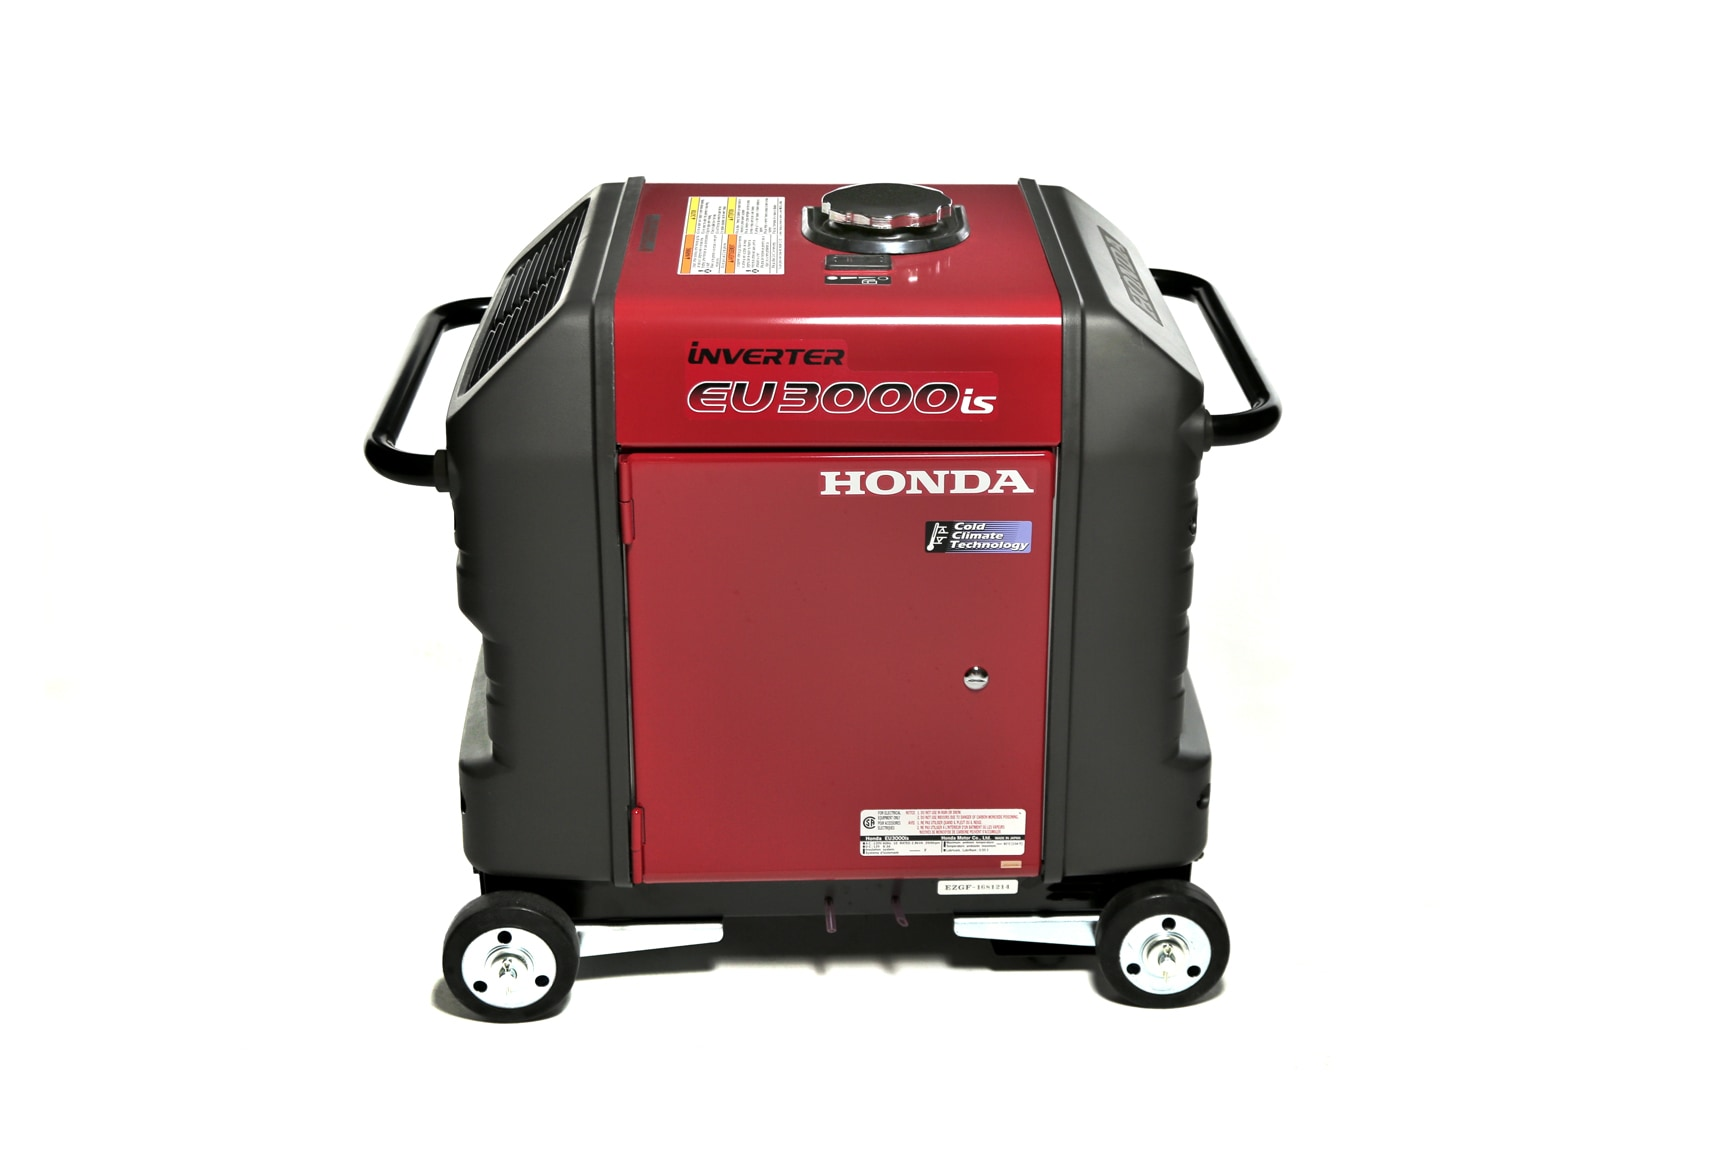 Ultra Quiet 3000i Es Honda Eu3000 Generator Wiring Diagram Provides An Easy Method To Transport Your Eu3000is 4 Wheel Same Size Kit